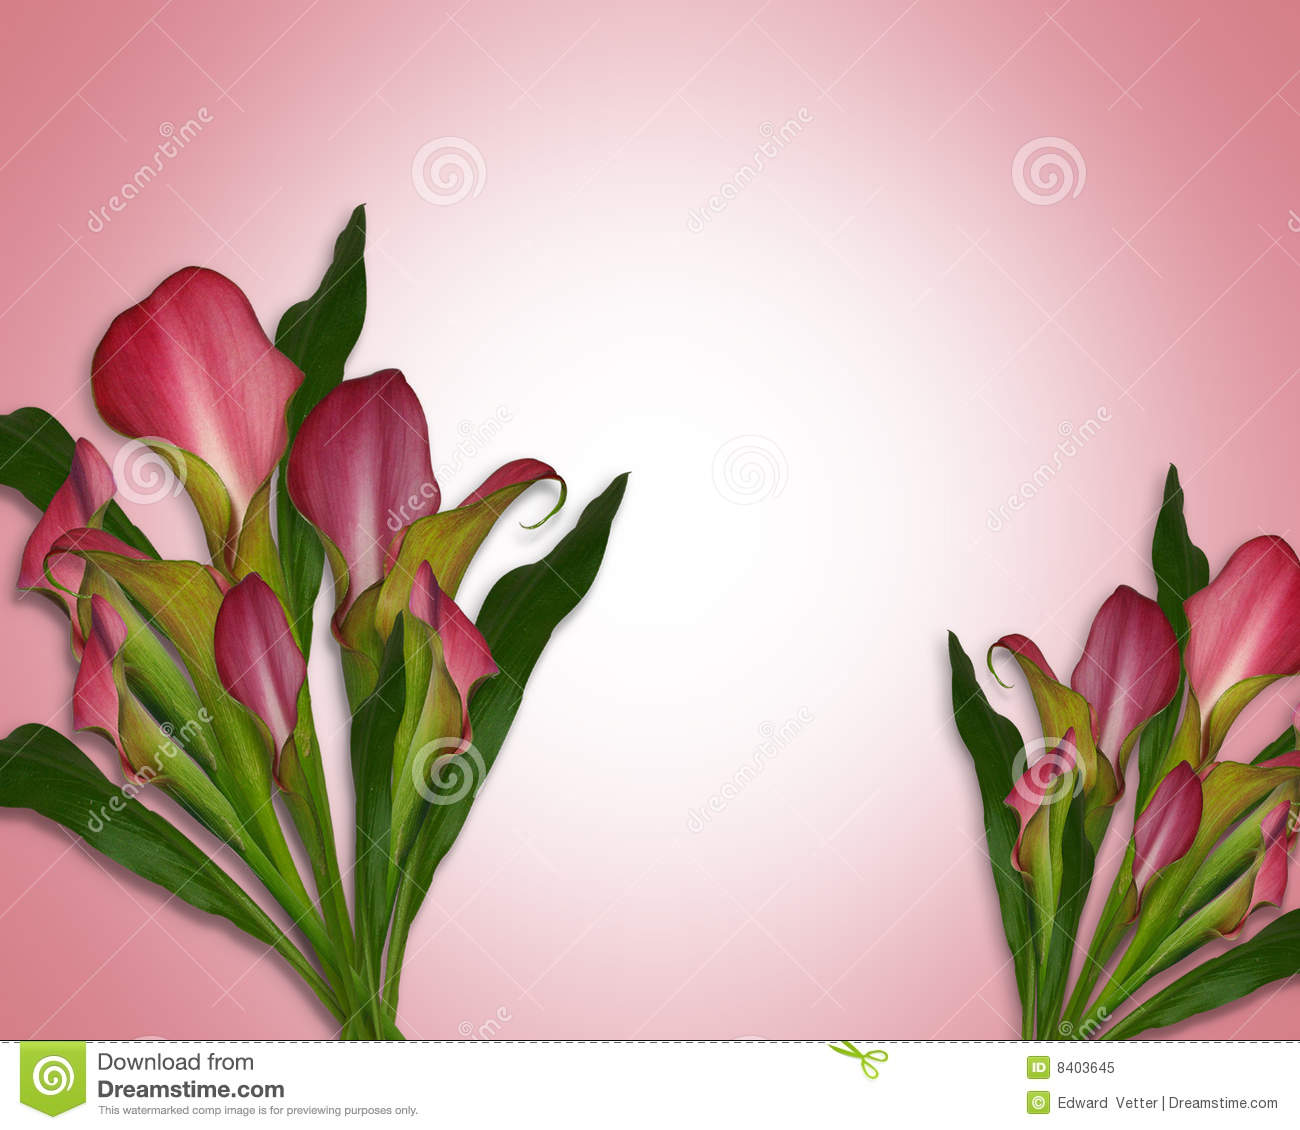 calla lilies background or border royalty free stock photo